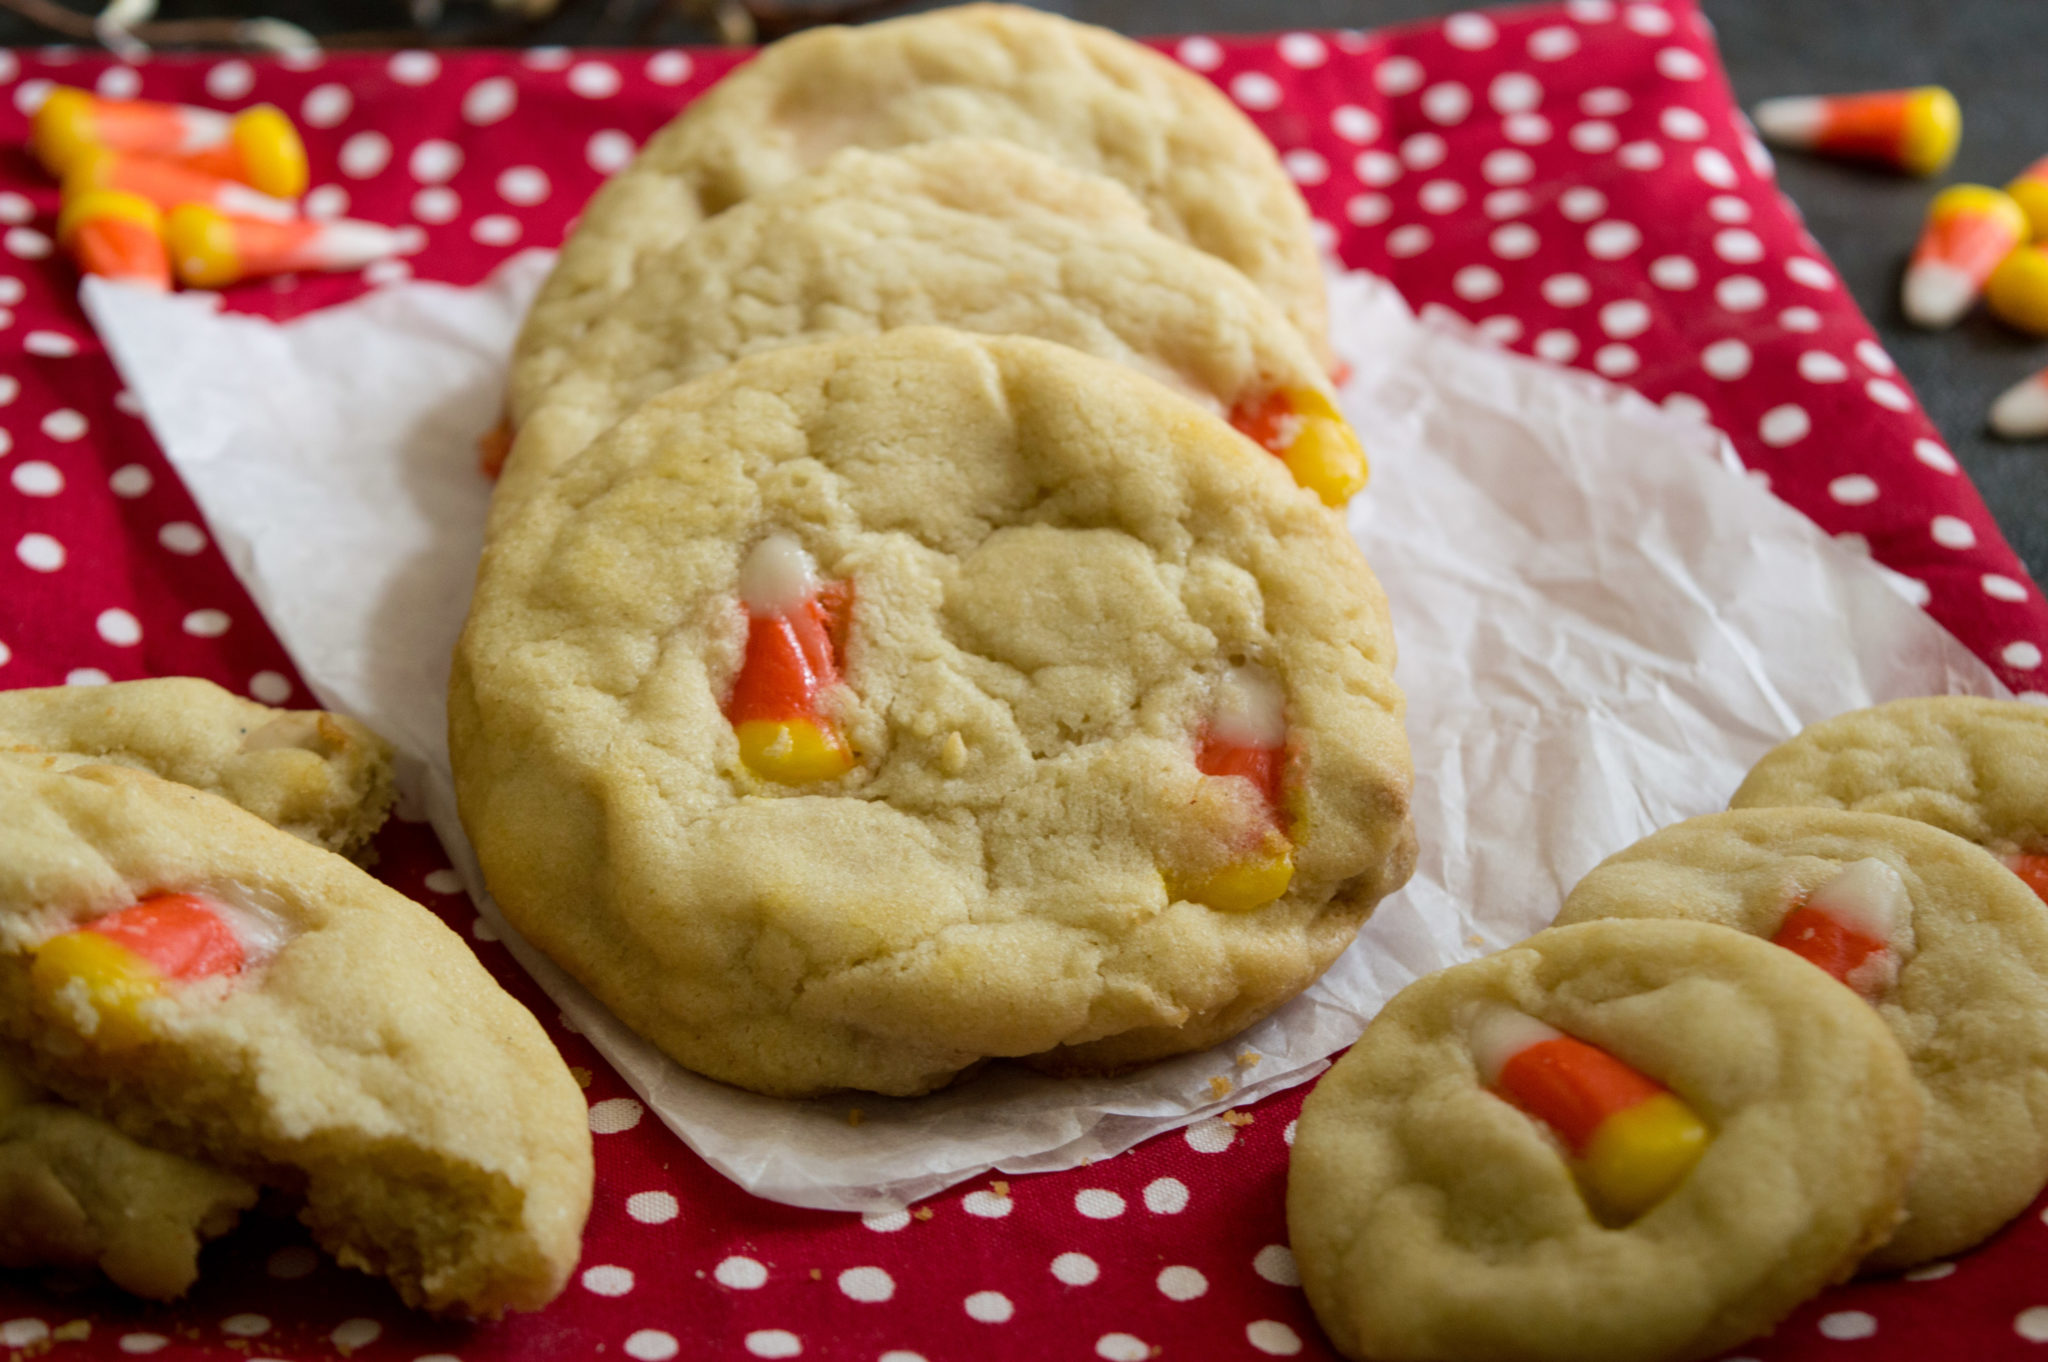 These Candy Corn Sugar Cookies are a delicious fall treat! They are easy to make and with the candy corn, they are festive for the fall season.